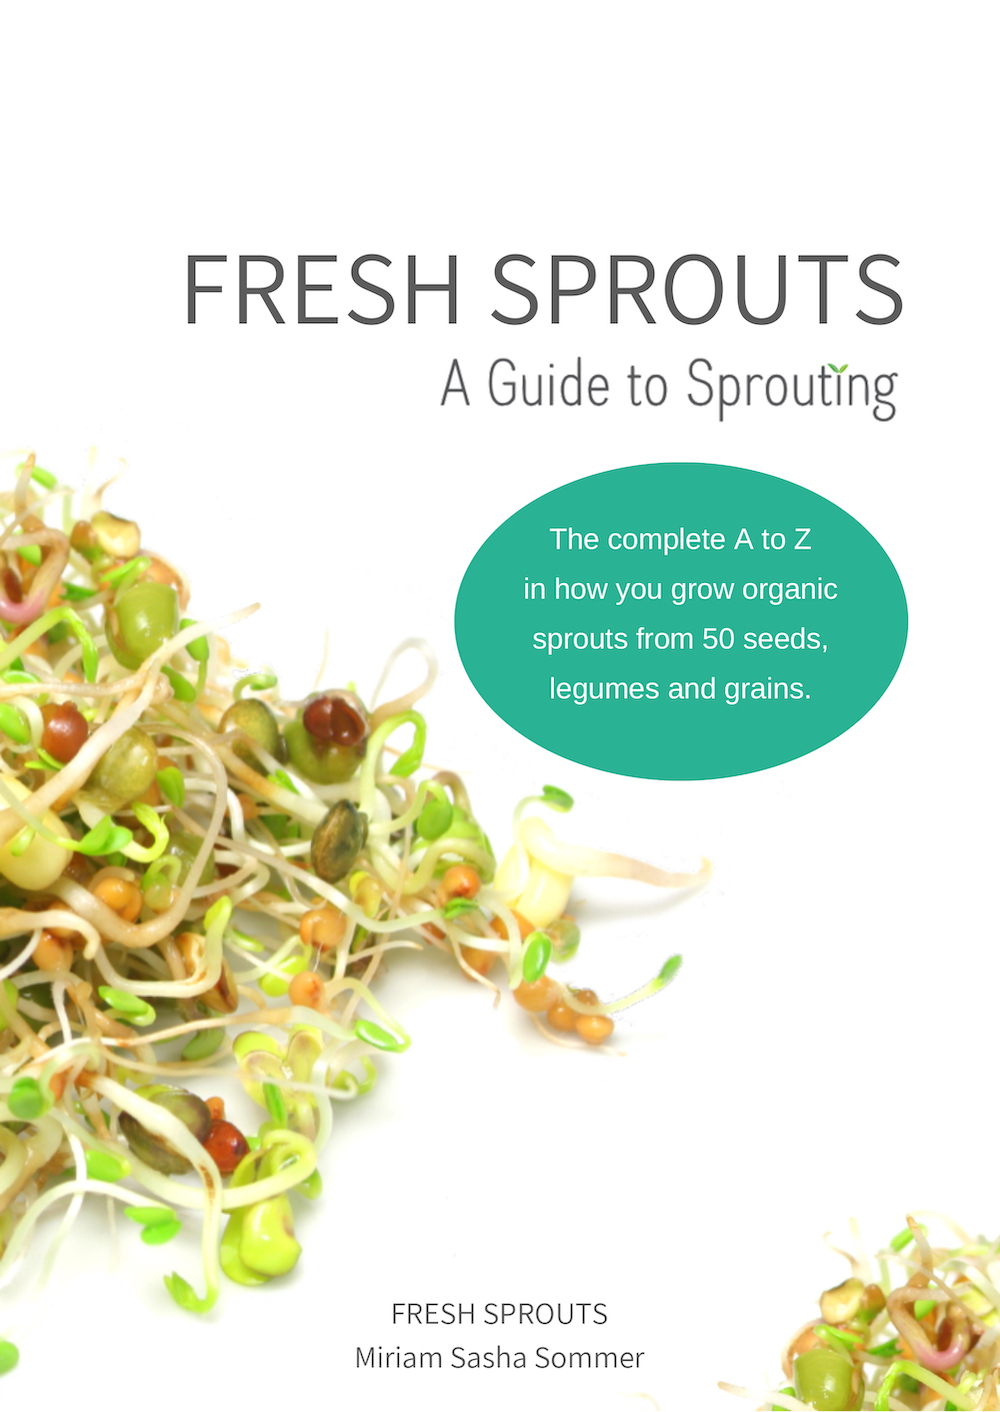 FRESH SPROUTS A Guide to Sprouting by Miriam Sasha Sommer